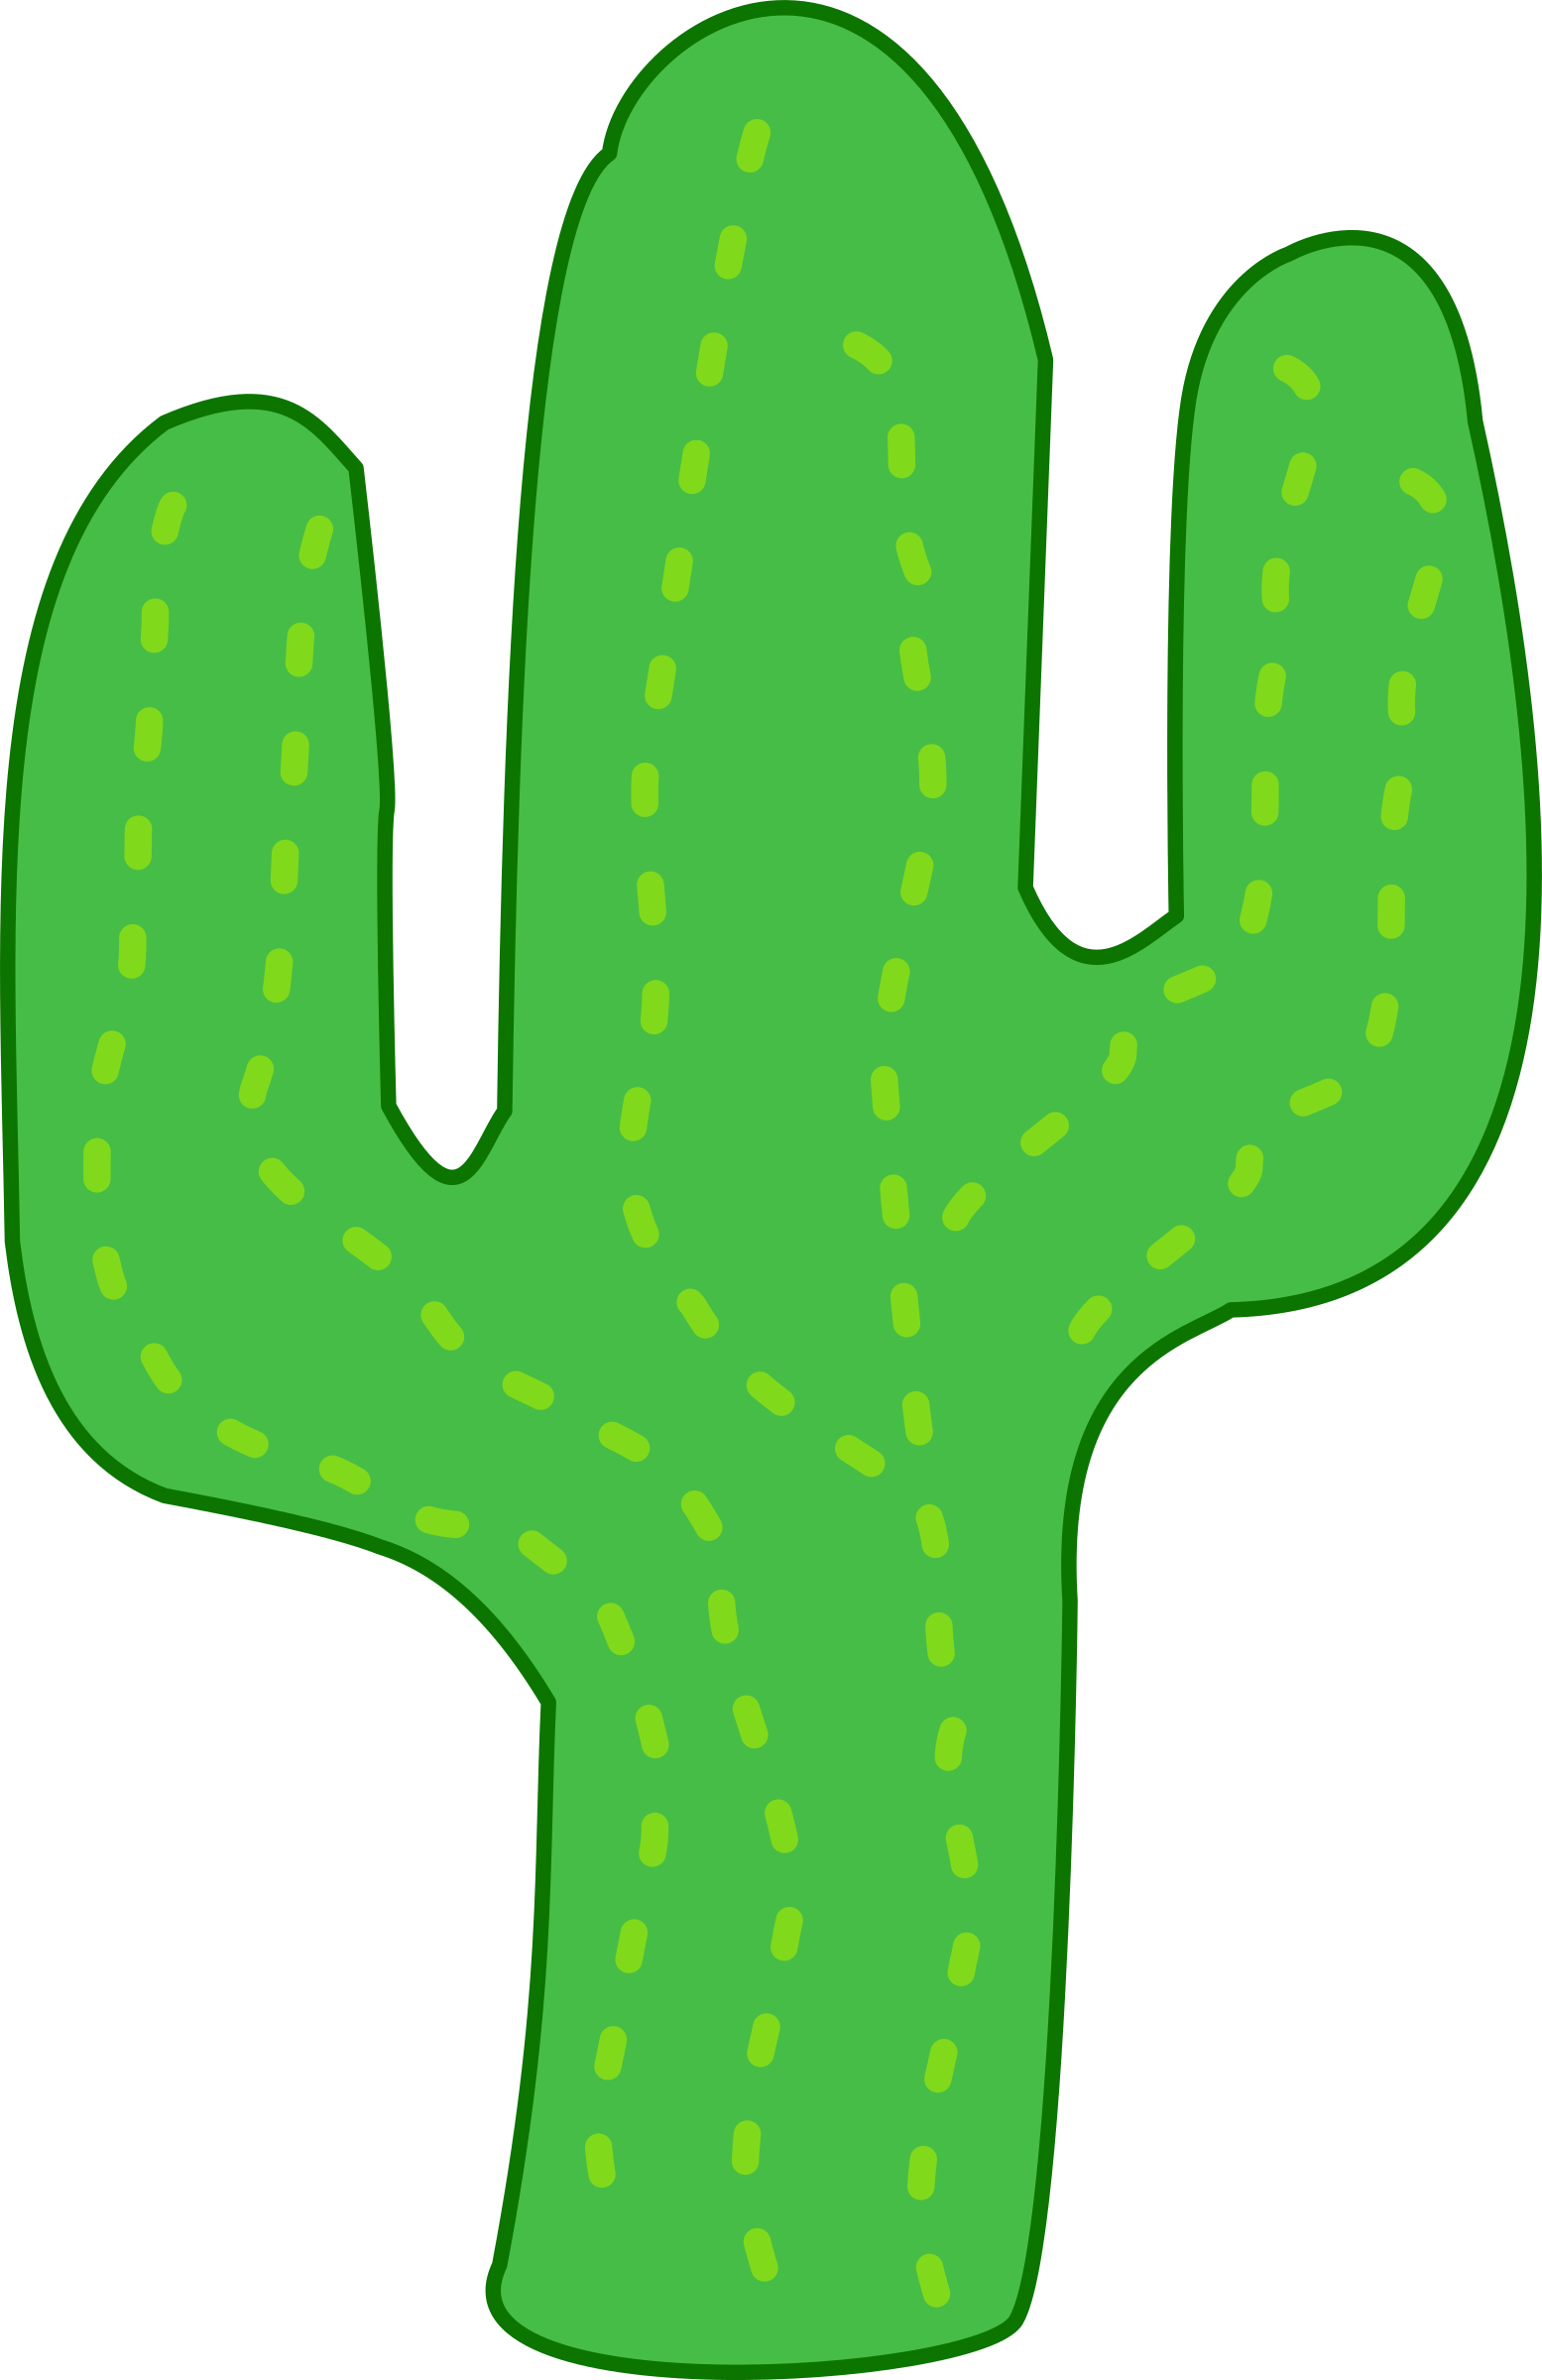 Christmas Cactus Clipart.Download Christmas Cactus Png Black And White Stock Cactus